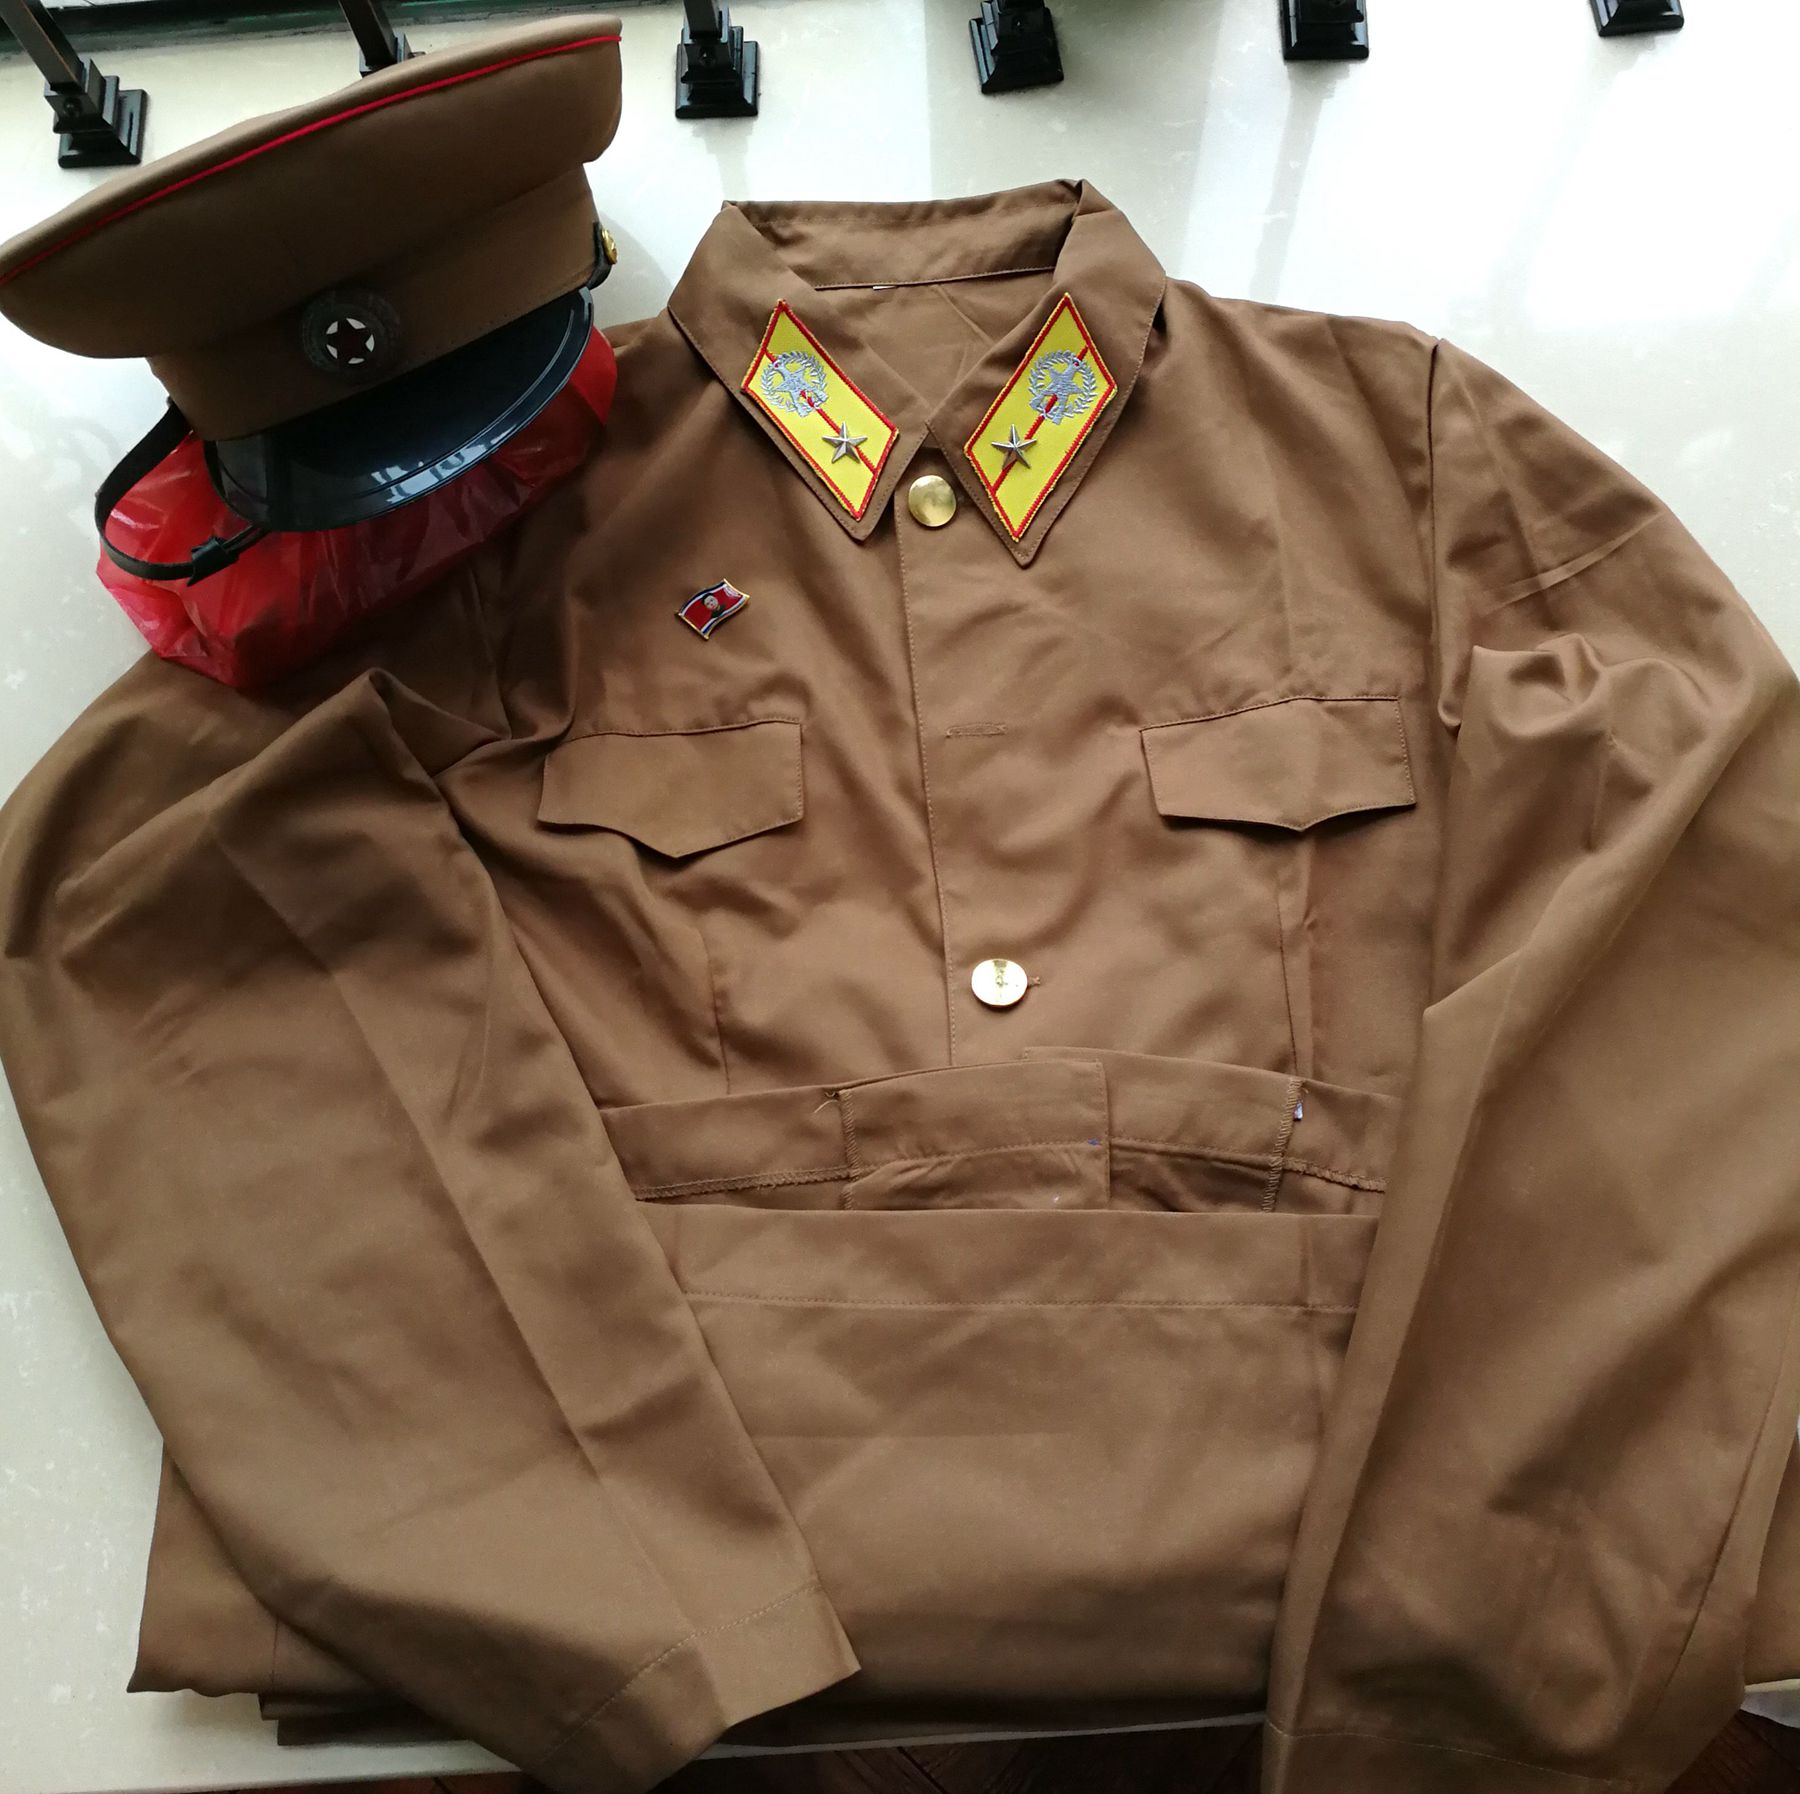 L8552, Korea Army Summer Uniform Suit, 2017 Style